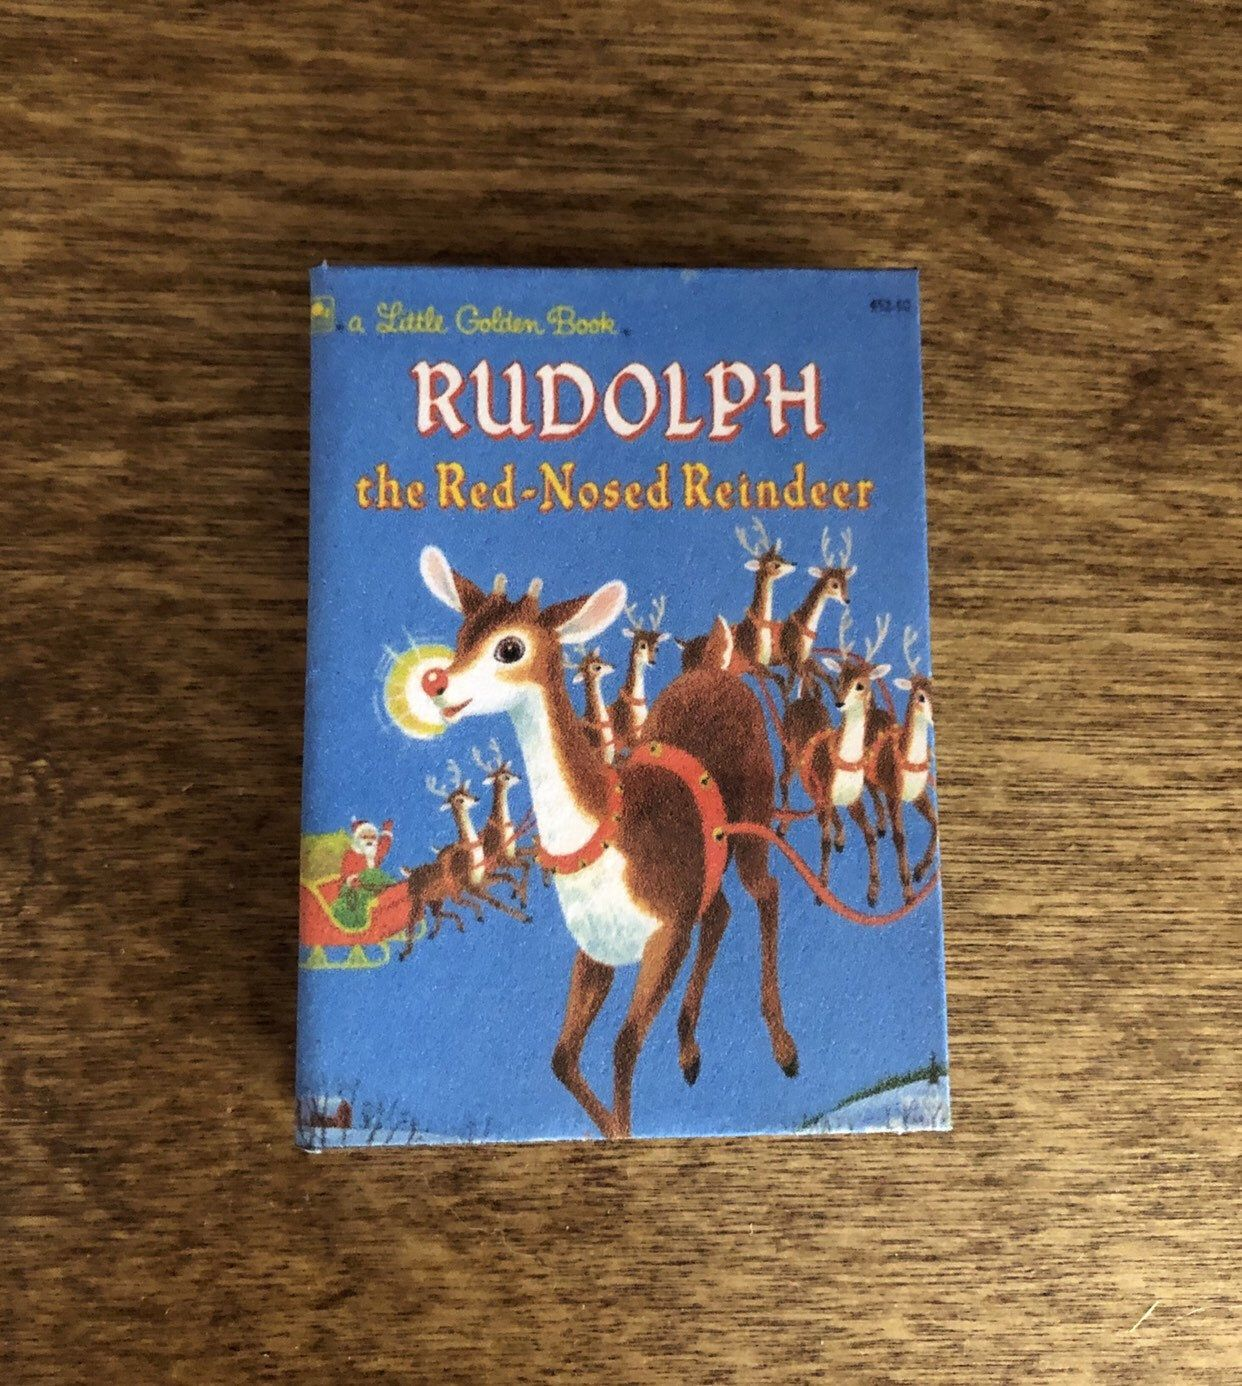 RUDOLPH THE RED NOSED REINDEER Book 1:3 Scale Readable American Girl Doll